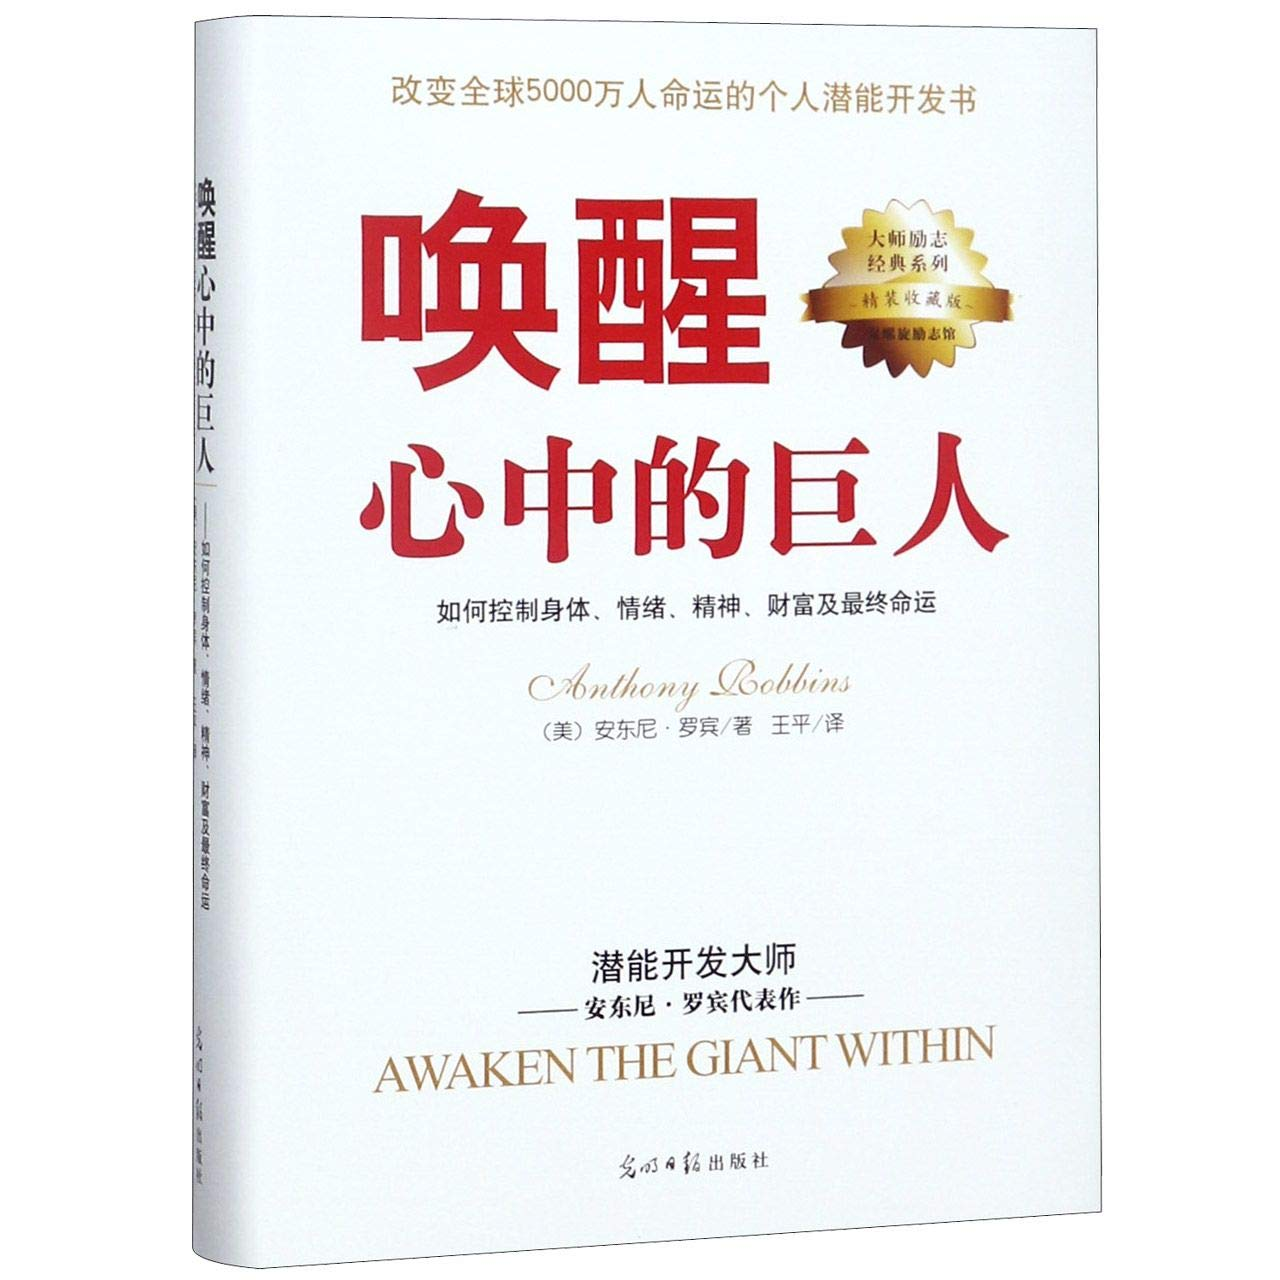 Awaken The Giant Within (Chinese Edition)